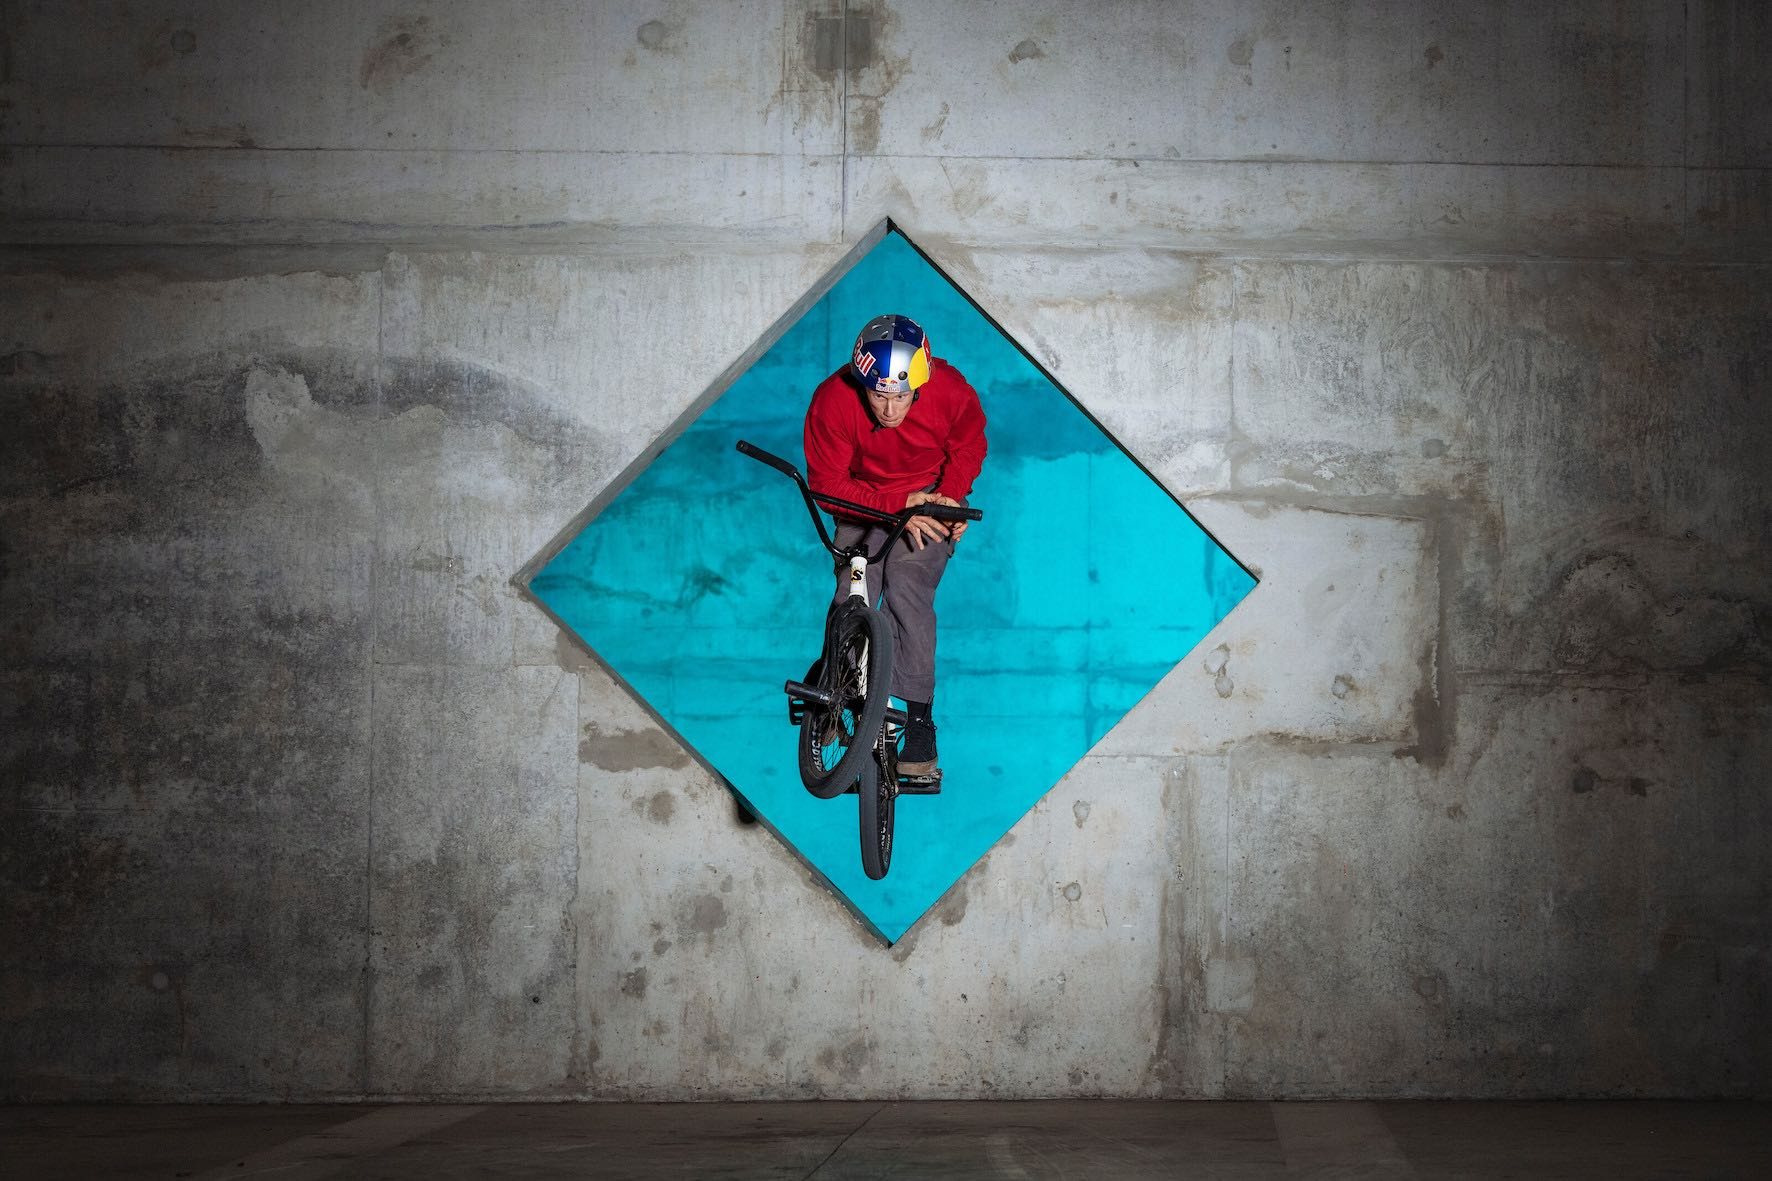 Murray Loubser performs a Barspin at Cape Town Stadium